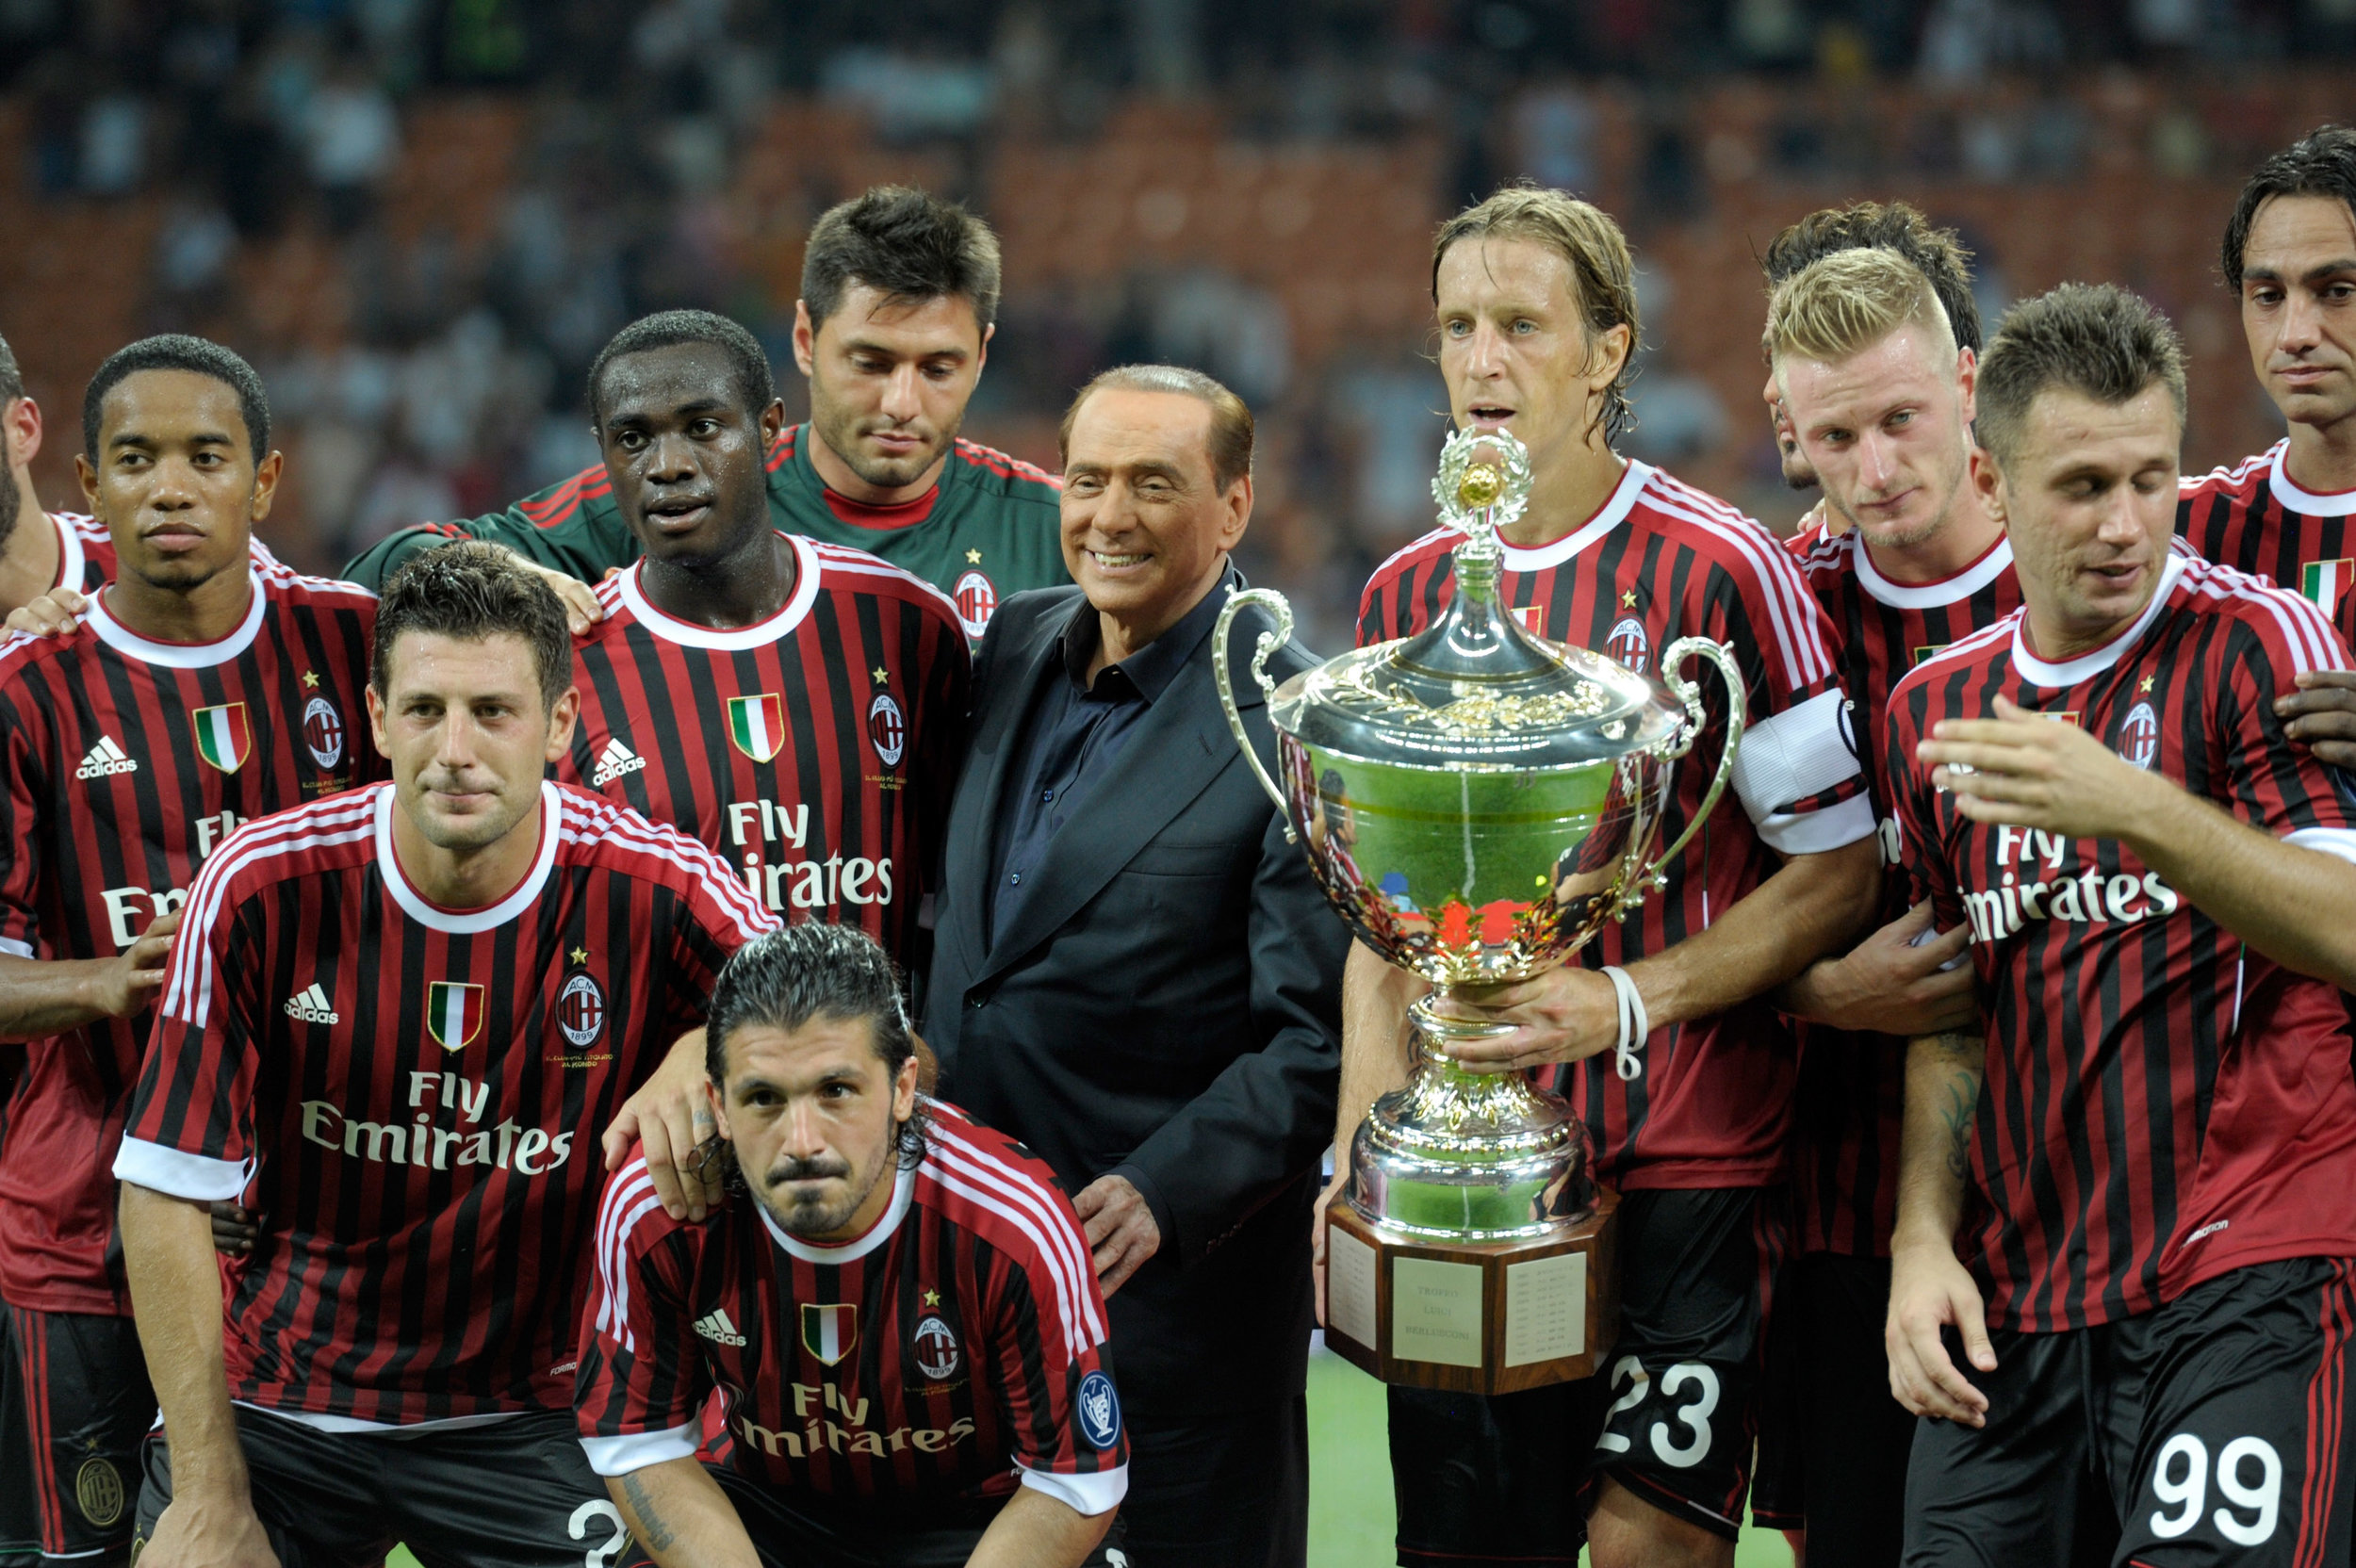 Silvio Berlusconi and the players of AC Milan celebrate winning the 2011 Berlusconi Trophy match between AC Milan and Juventus FC. Photo by Claudio Villa/Getty Images